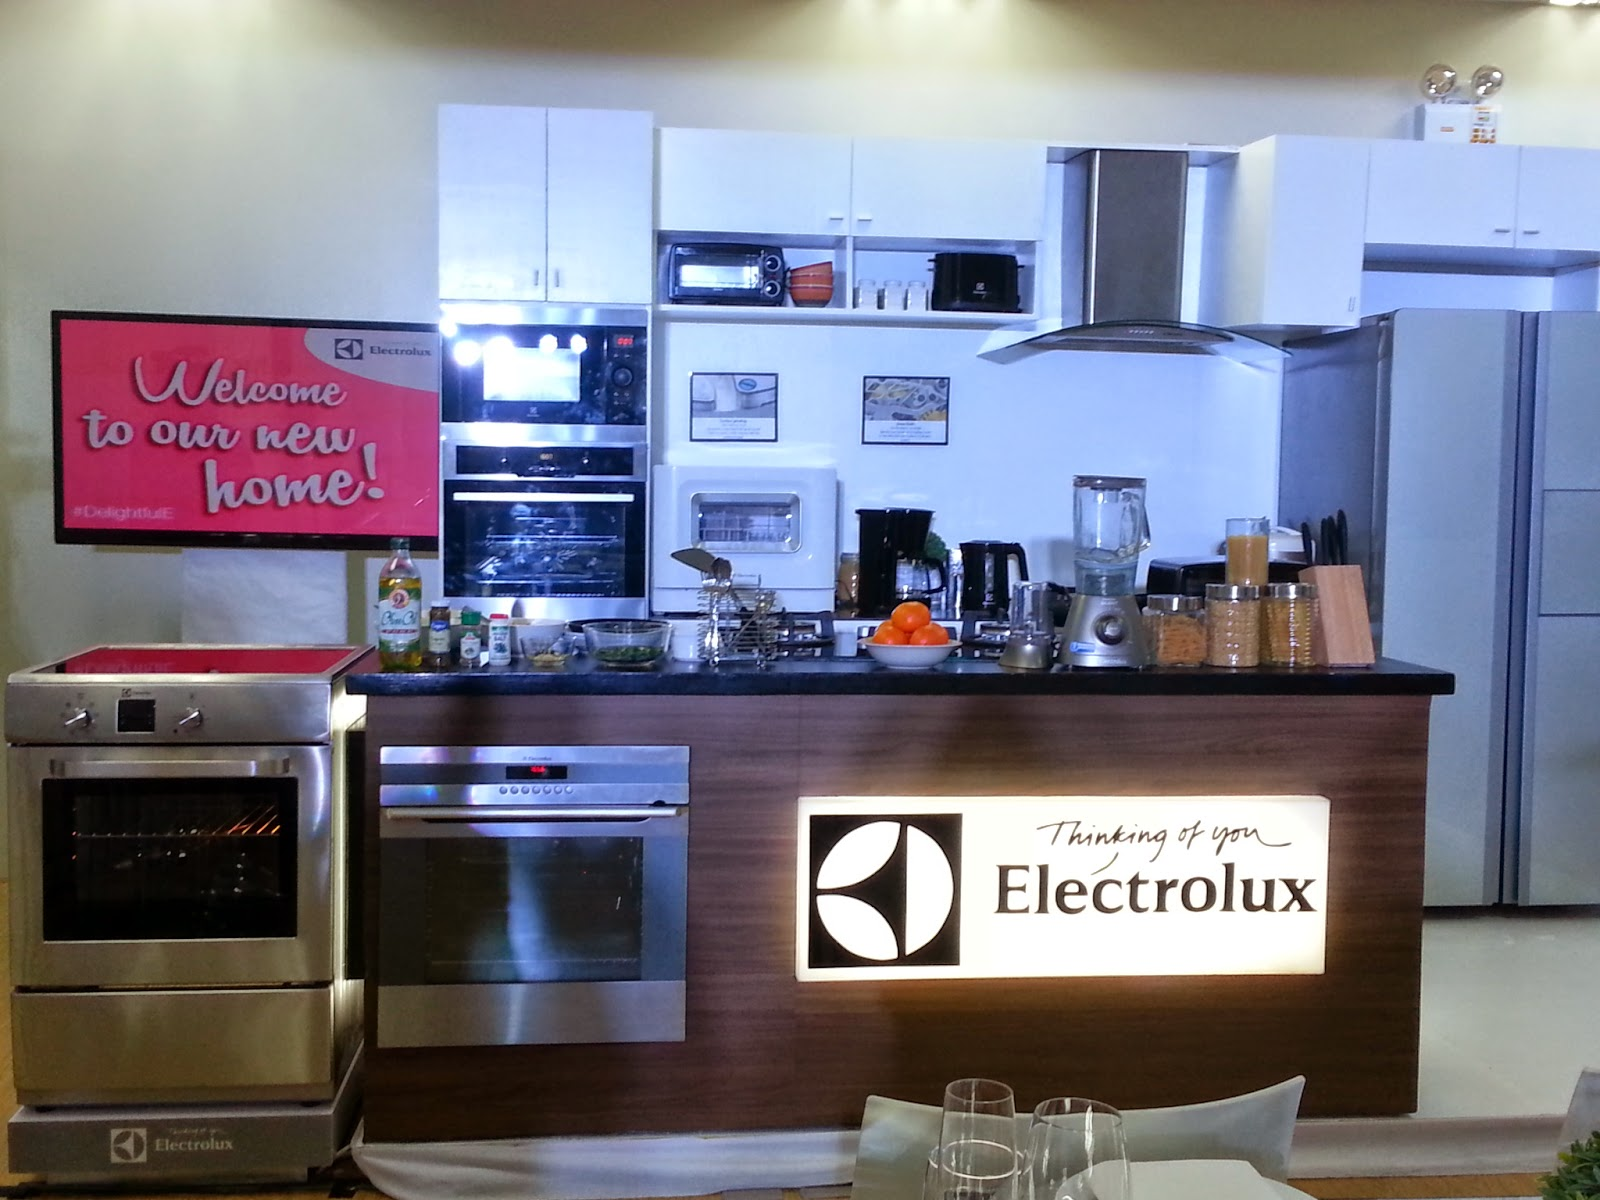 electrolux kitchen appliances. a dining table with plate settings and fully furnished kitchen! kudos to whoever transformed this corporate space into home, sweet home! electrolux kitchen appliances c